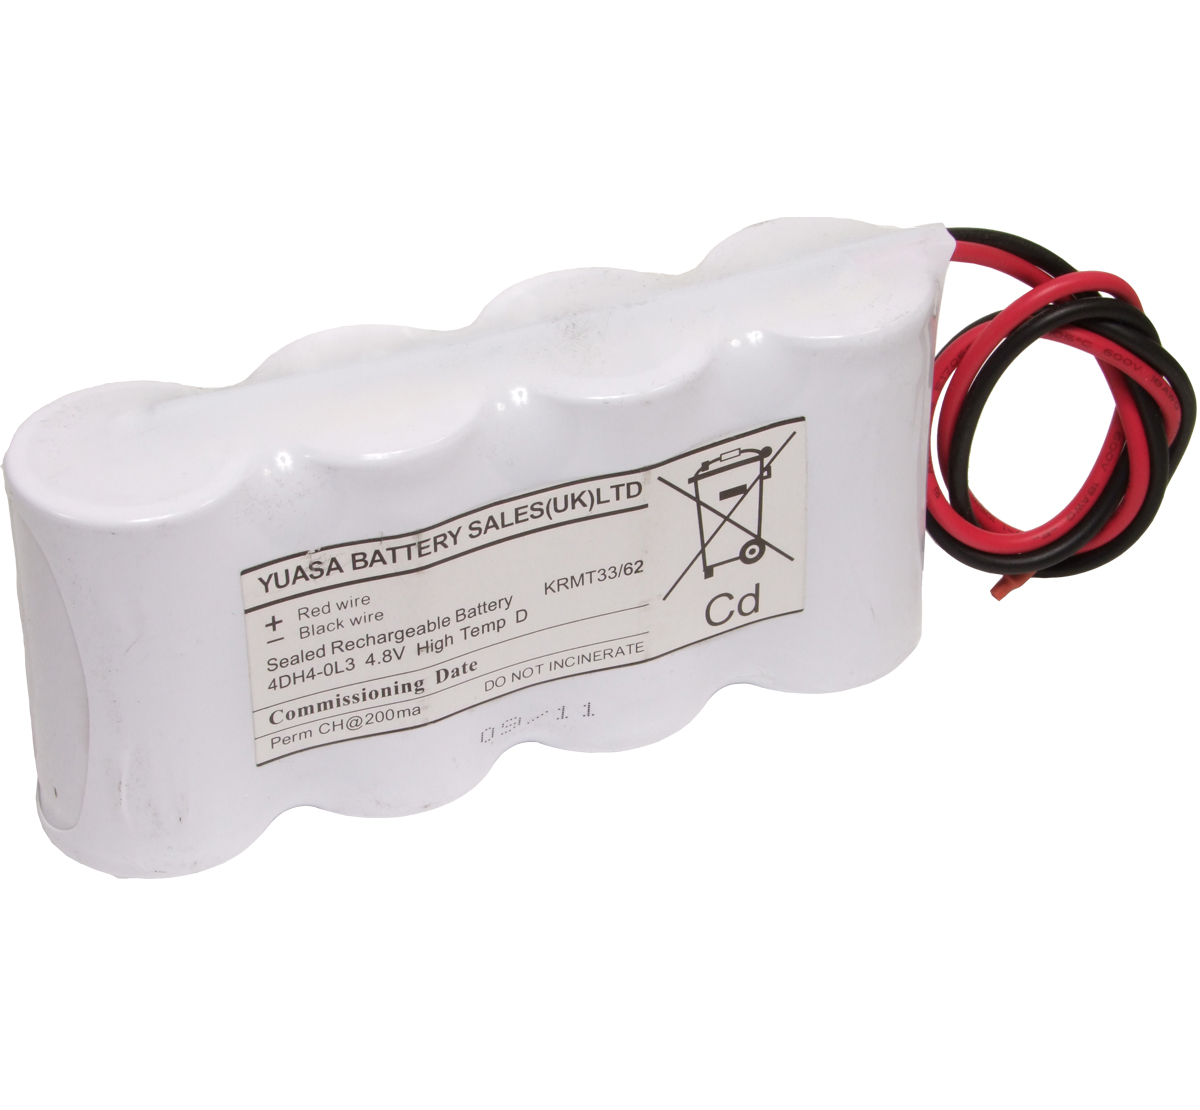 Yuasa 4DH4.0L3 Emergency Lighting Battery